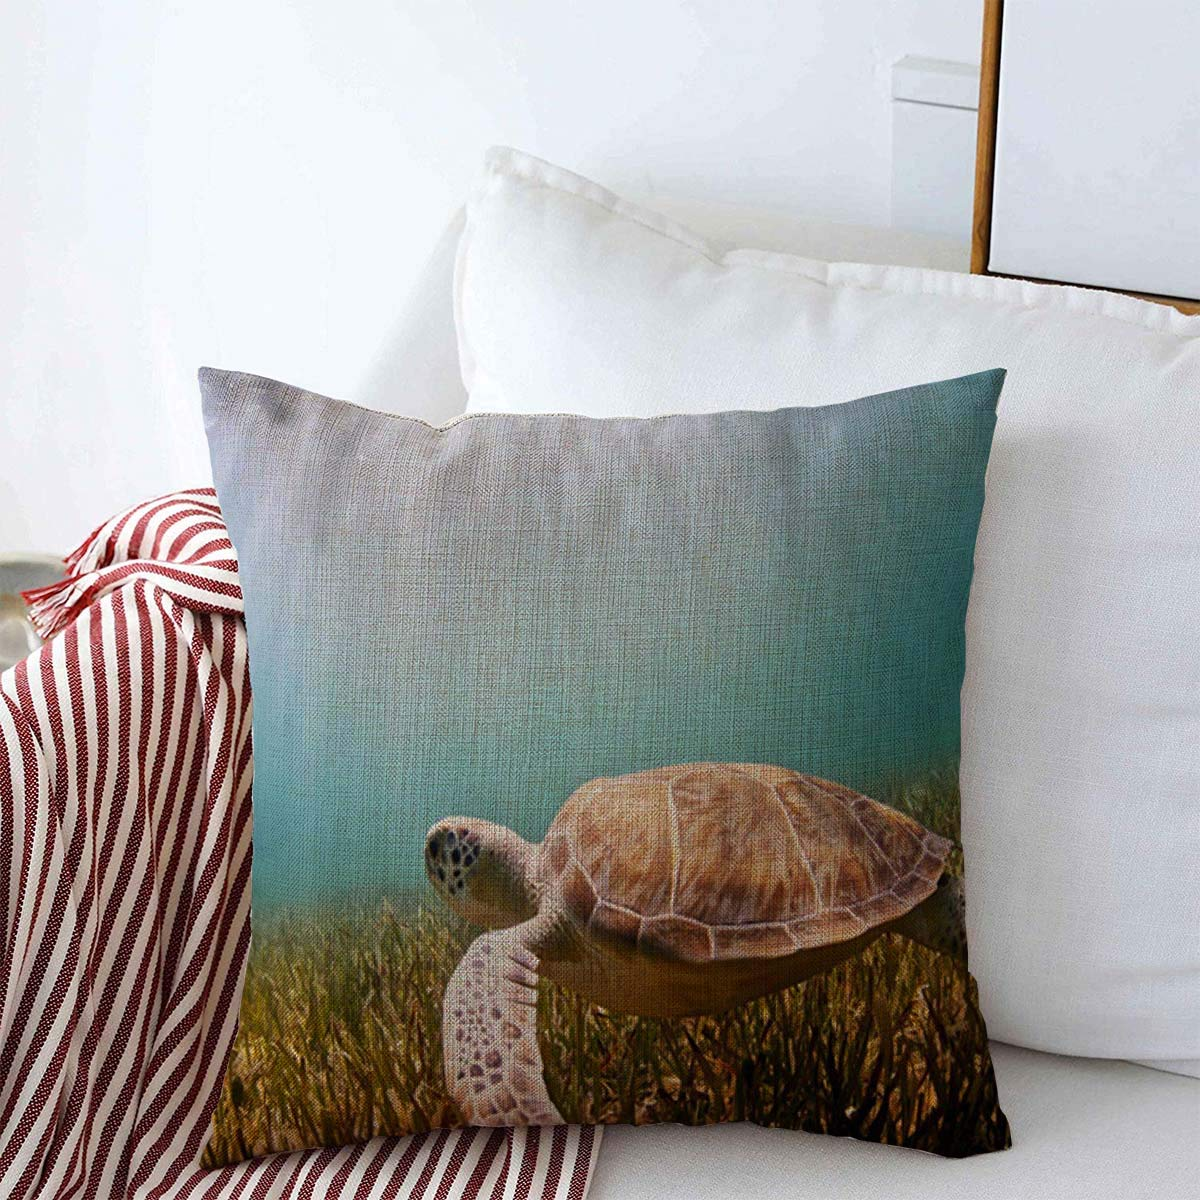 Throw Pillows Covers Cushion Case Summer Blue Aquatic Green Turtle Swimming Over Sea Grass Adventure Clea Design Cotton Linen for Fall Couch Home Decor 16 x 16 Inches